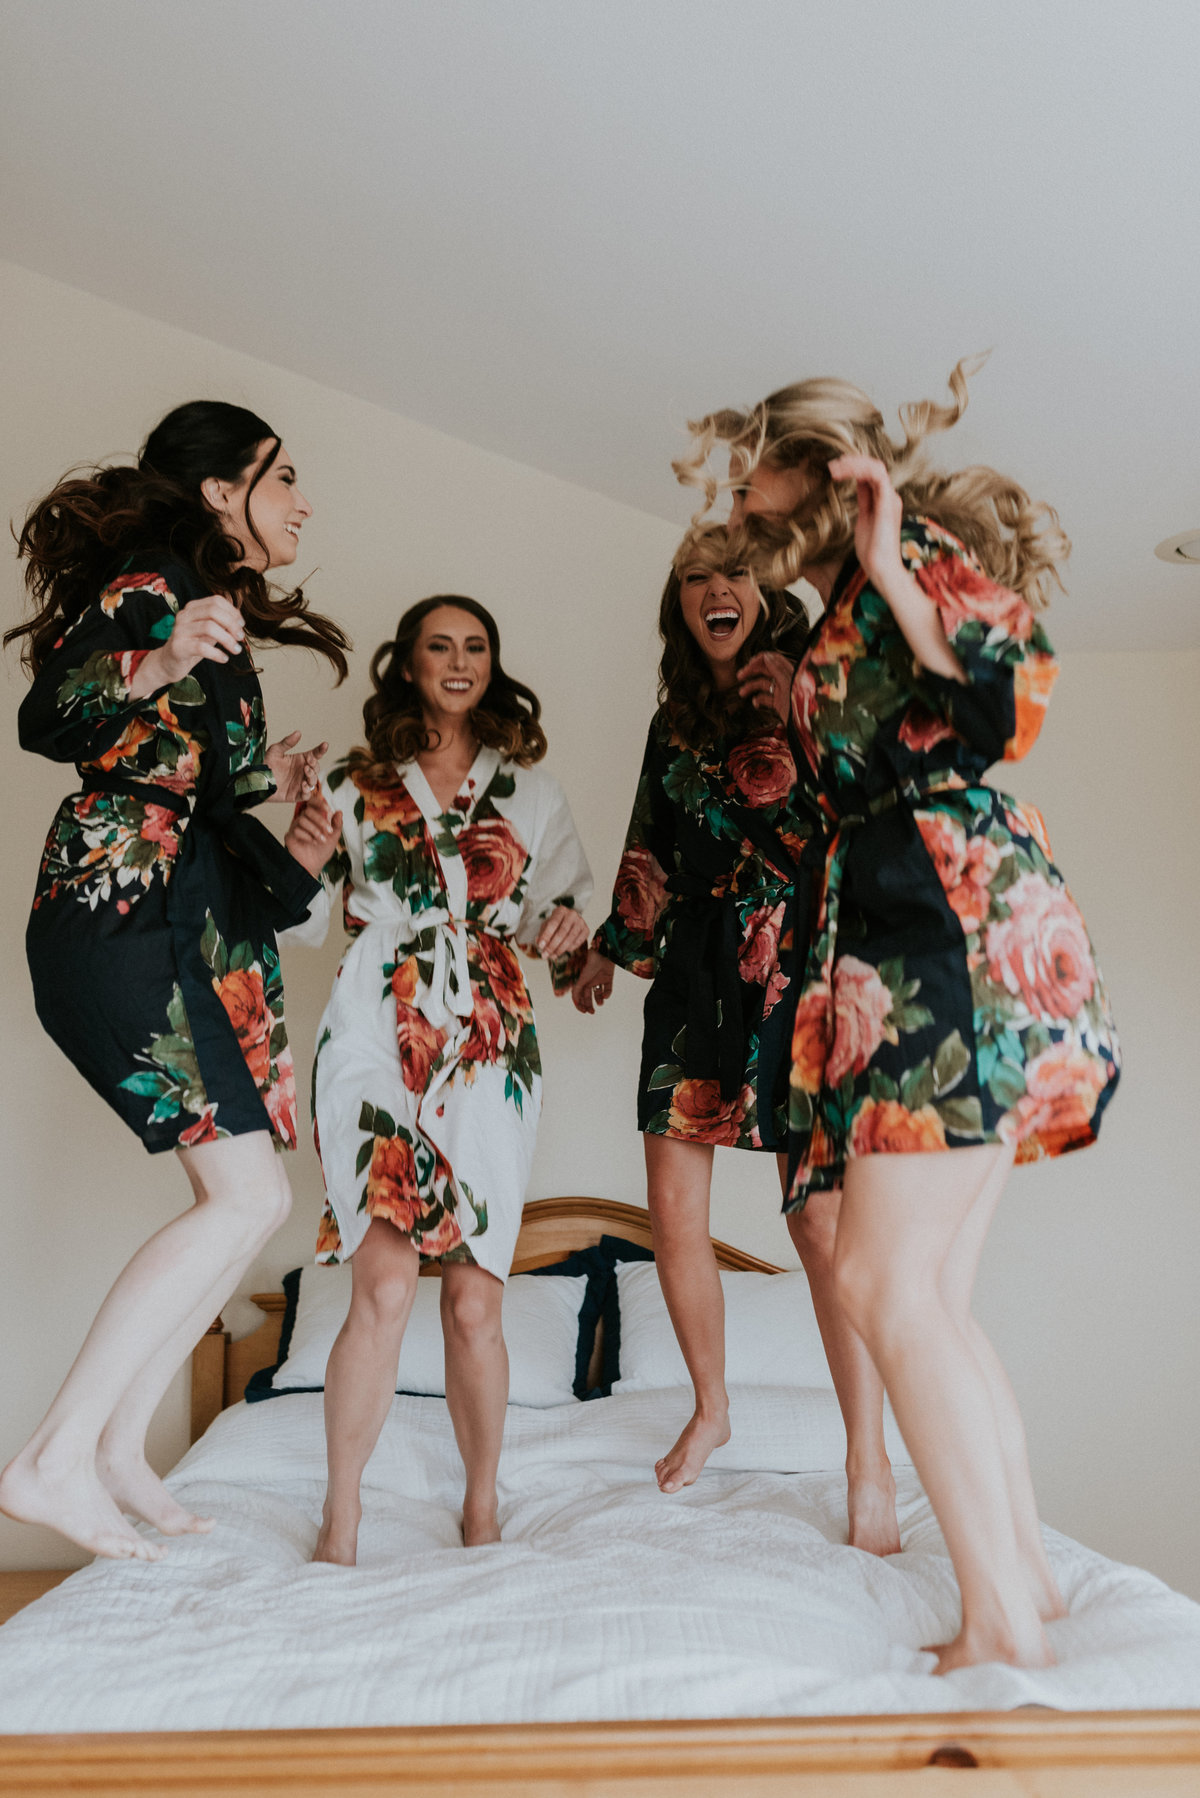 meredith_sands_wedding_photographer_bend_oregon_sisters-2